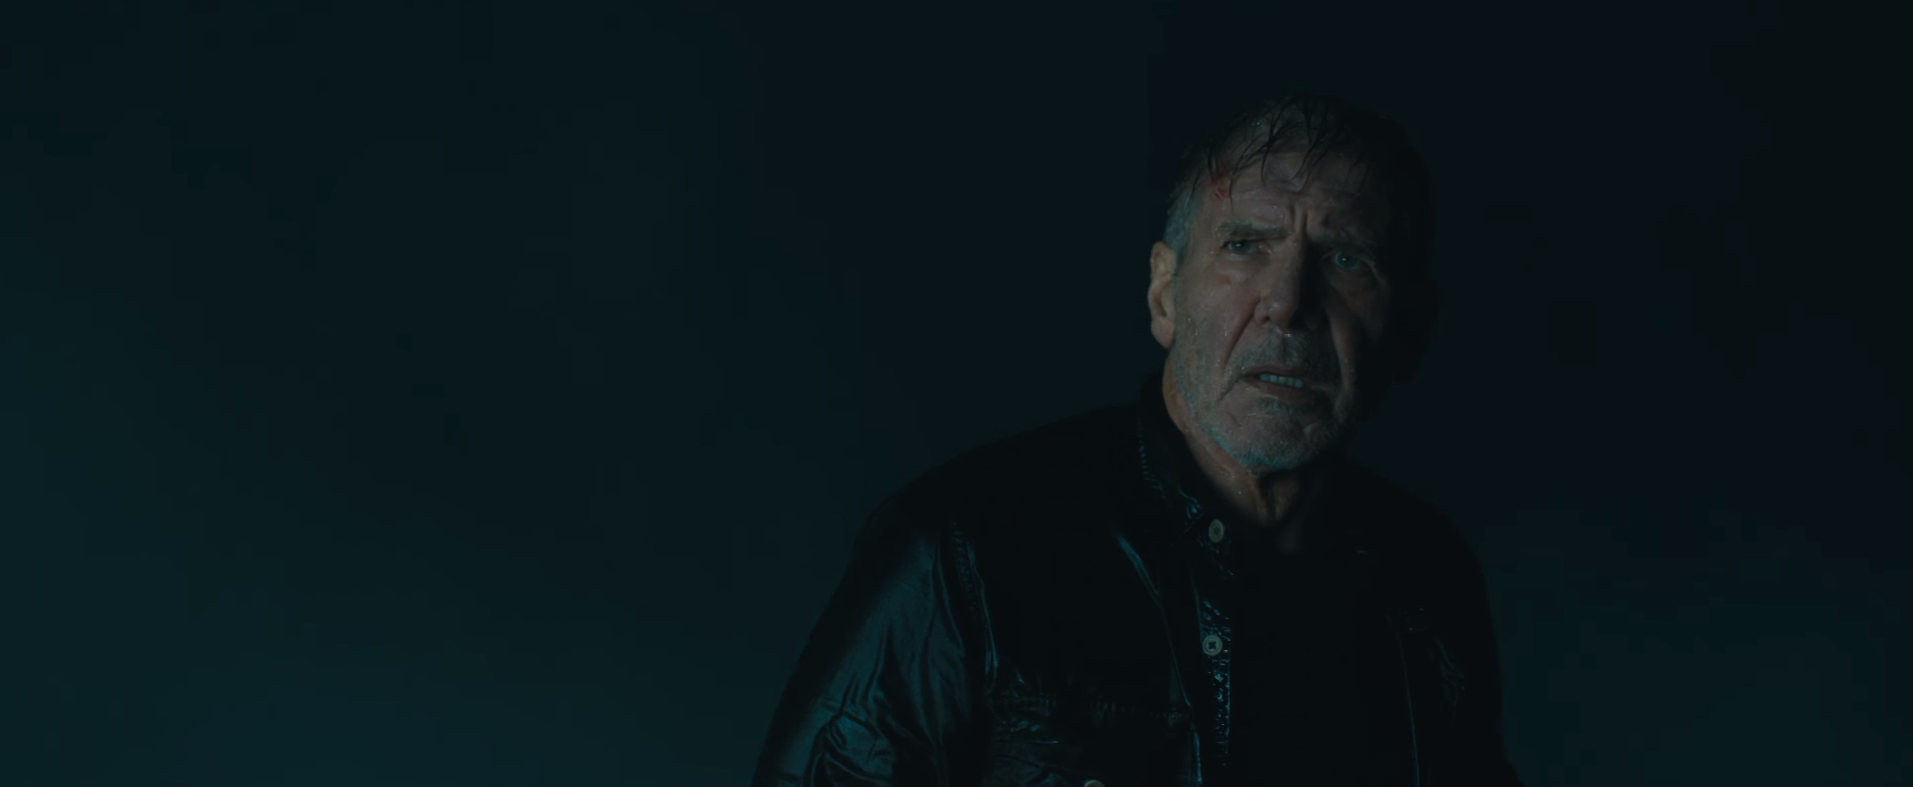 an analysis of blade runner a film starring harrison ford Harrison ford is back as rick deckard in blade runner 2049's trailer blade runner 2049's movie trailer has landed starring ryan gosling and harrison ford in the hotly-anticipated sci-fi sequel.